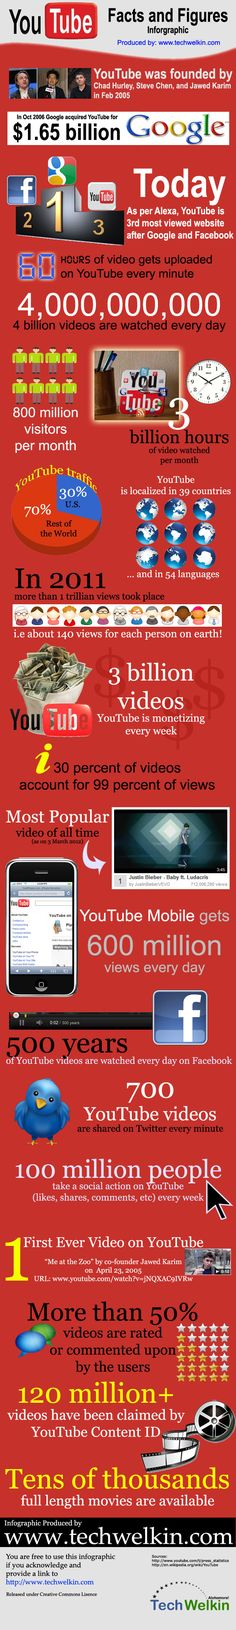 35 Mind Numbing YouTube Facts, Figures and Statistics – Infographic. Assuming that this is factually true... Wow.